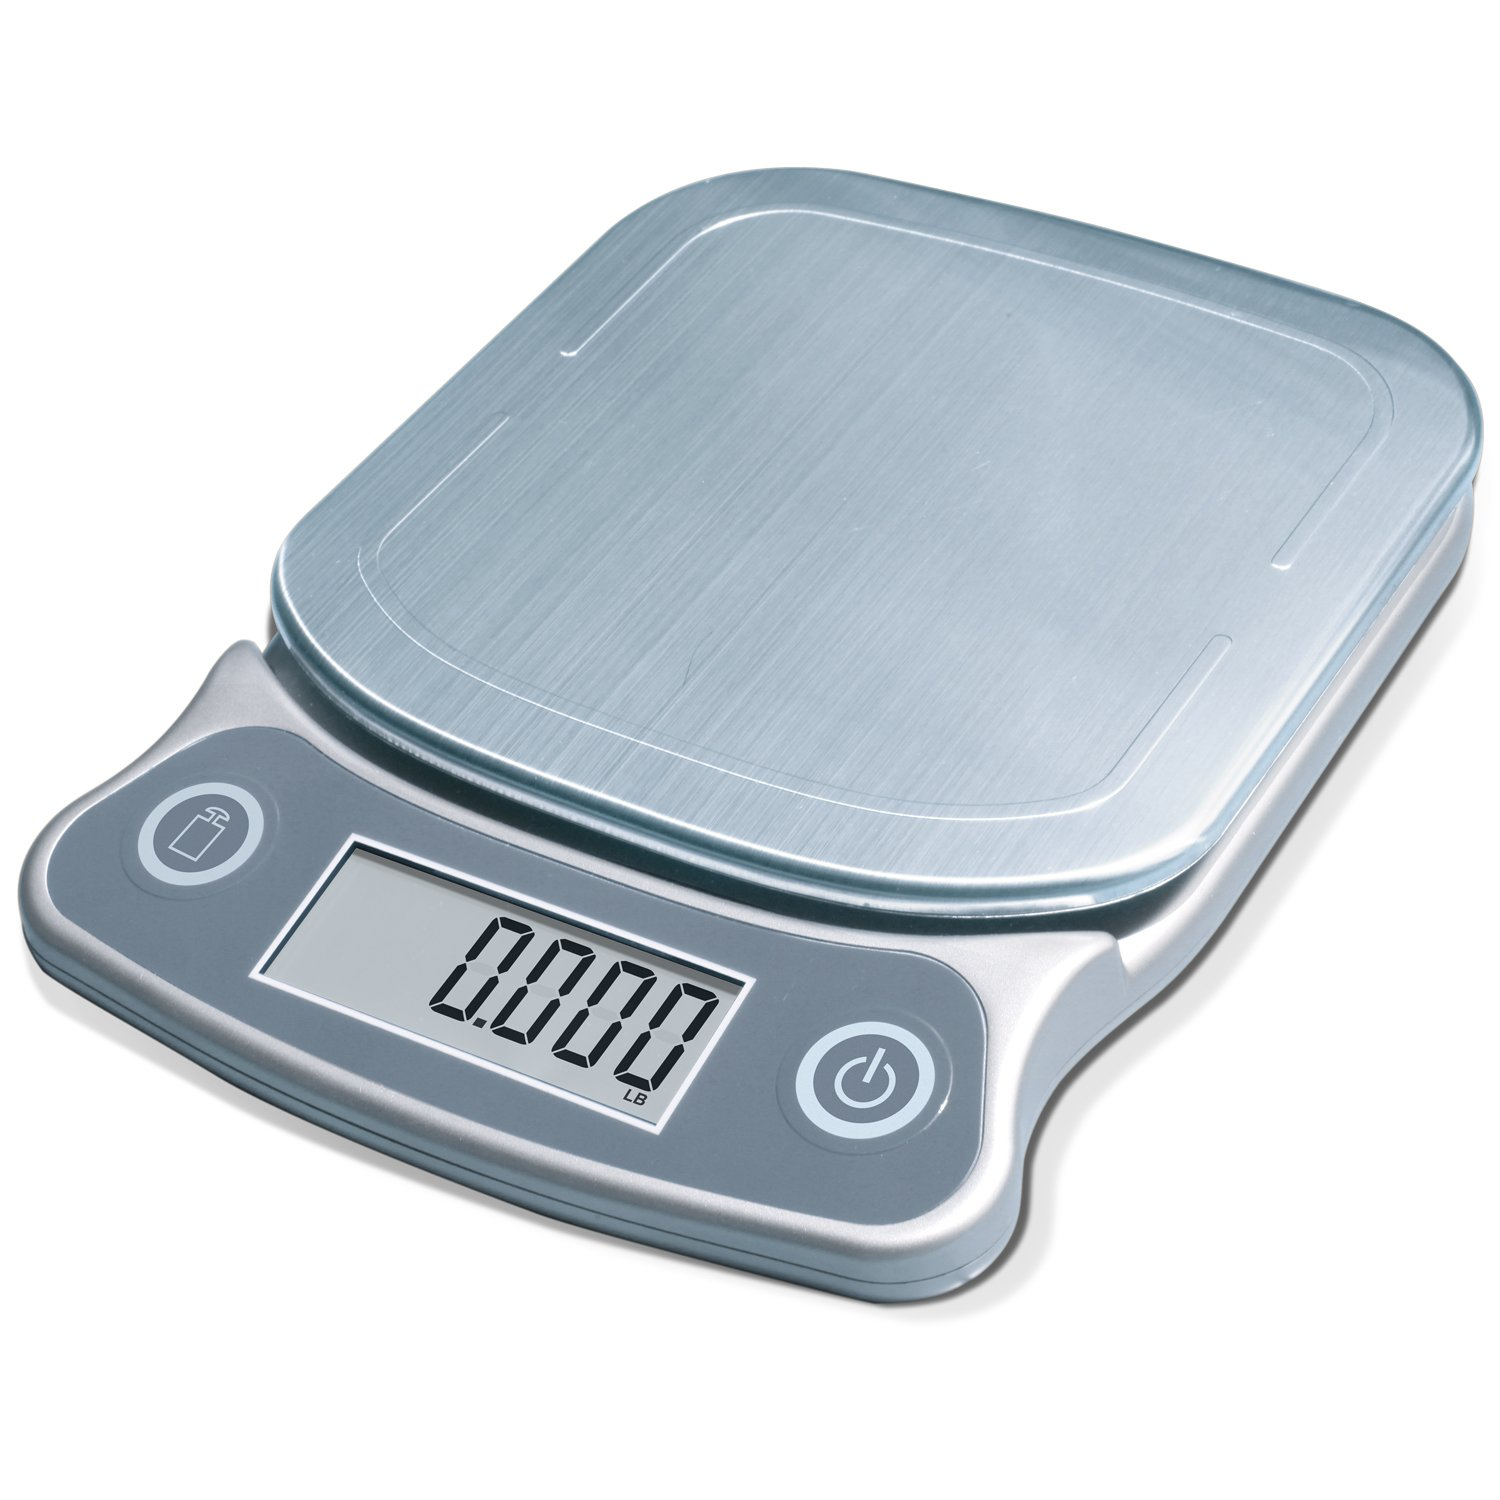 Digital Kitchen Scale: EatSmart Precision Elite Stainless Steel Platform Digital